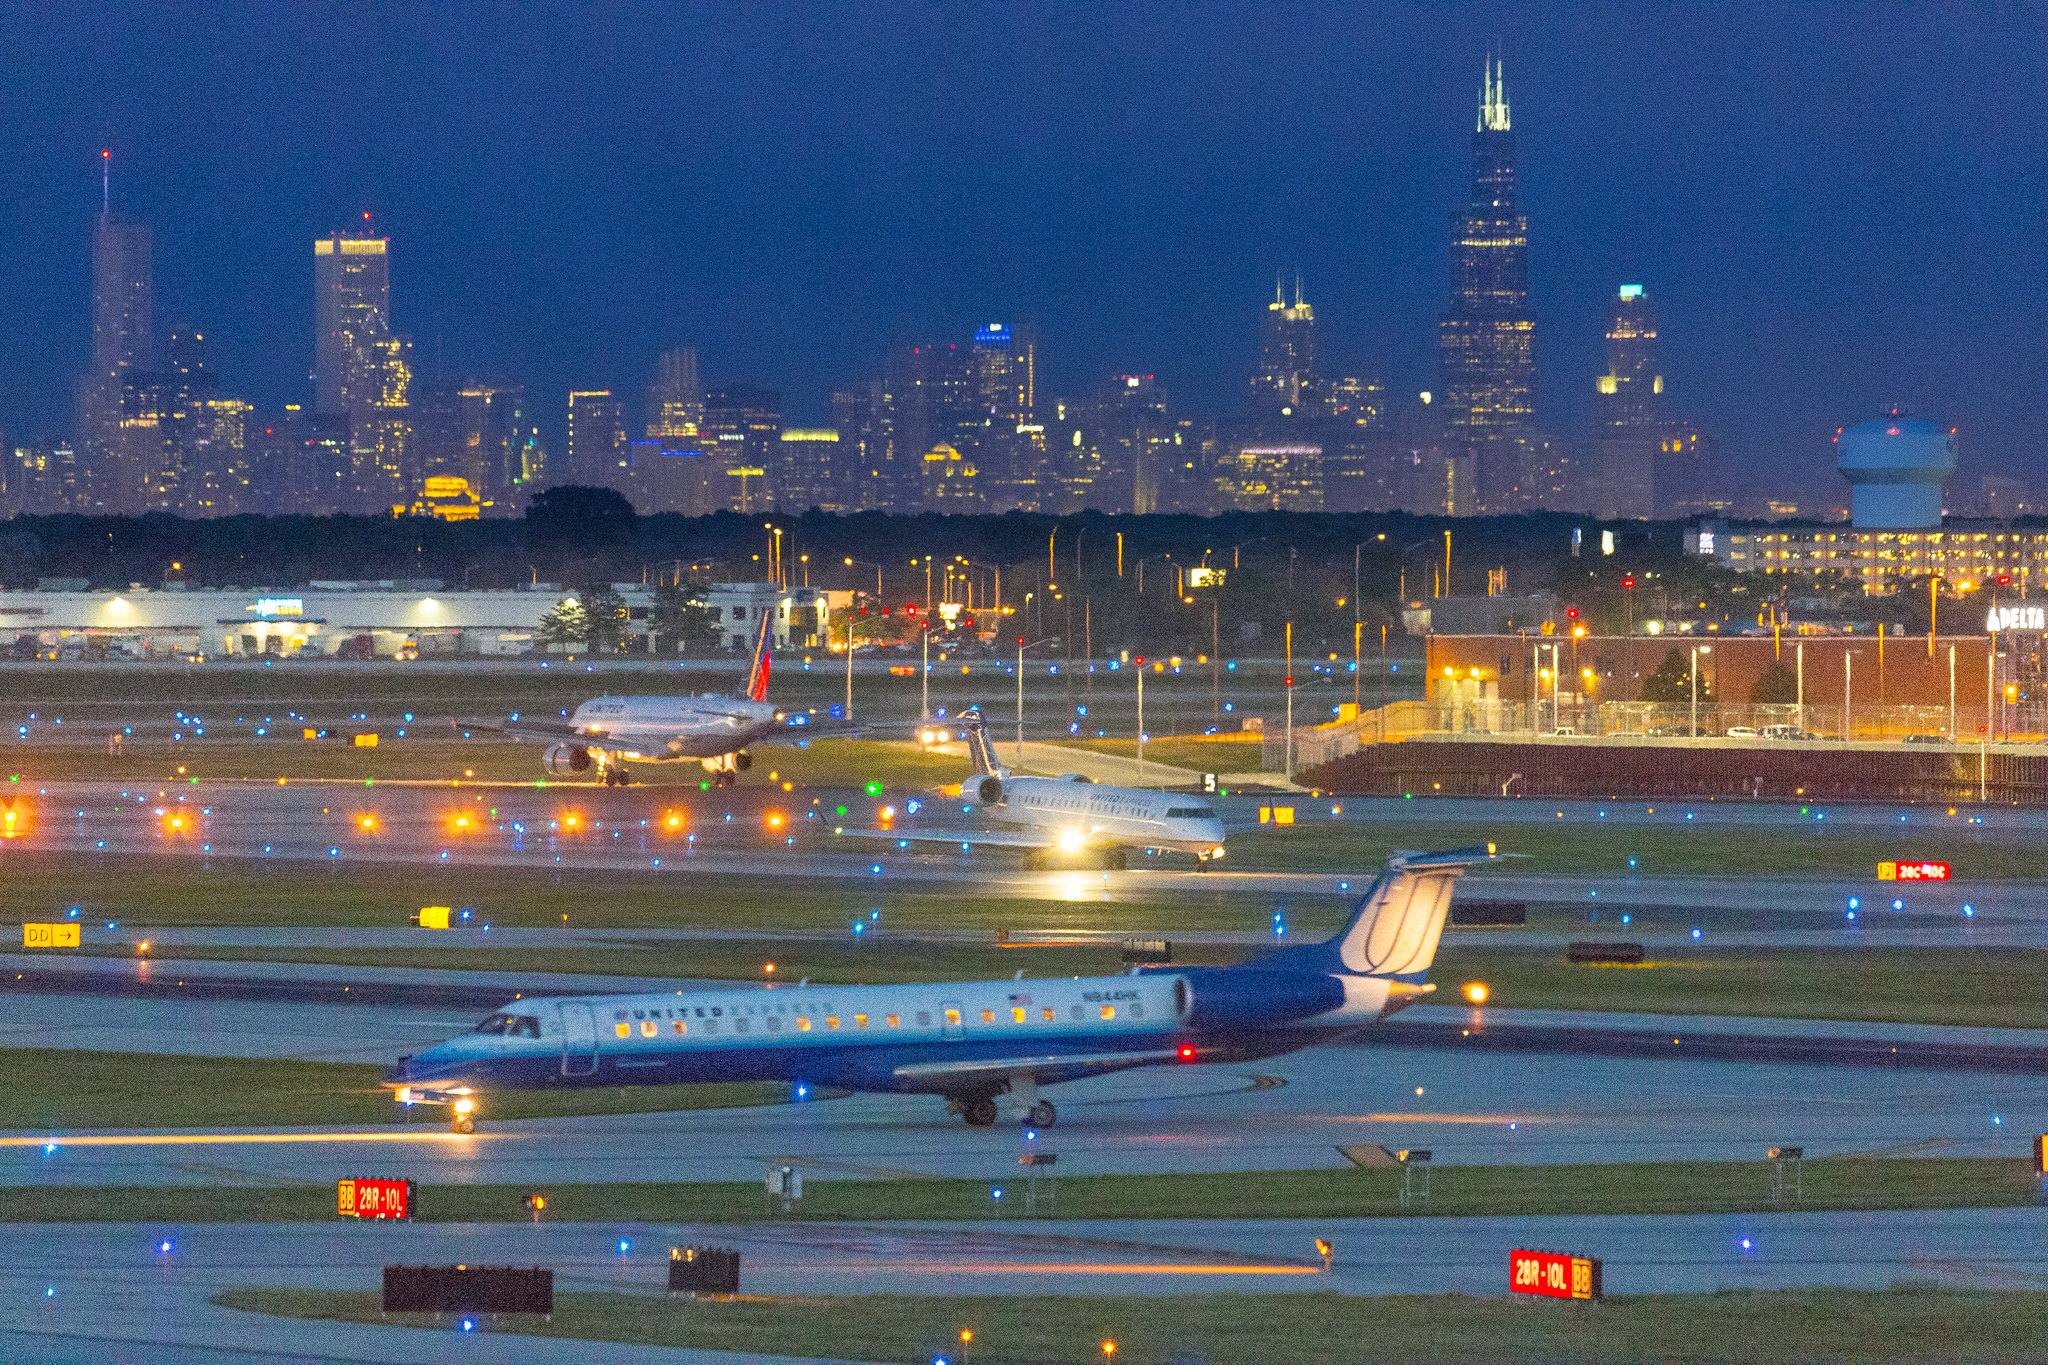 An airfield lit up at night with Chicago's skyline in the background.